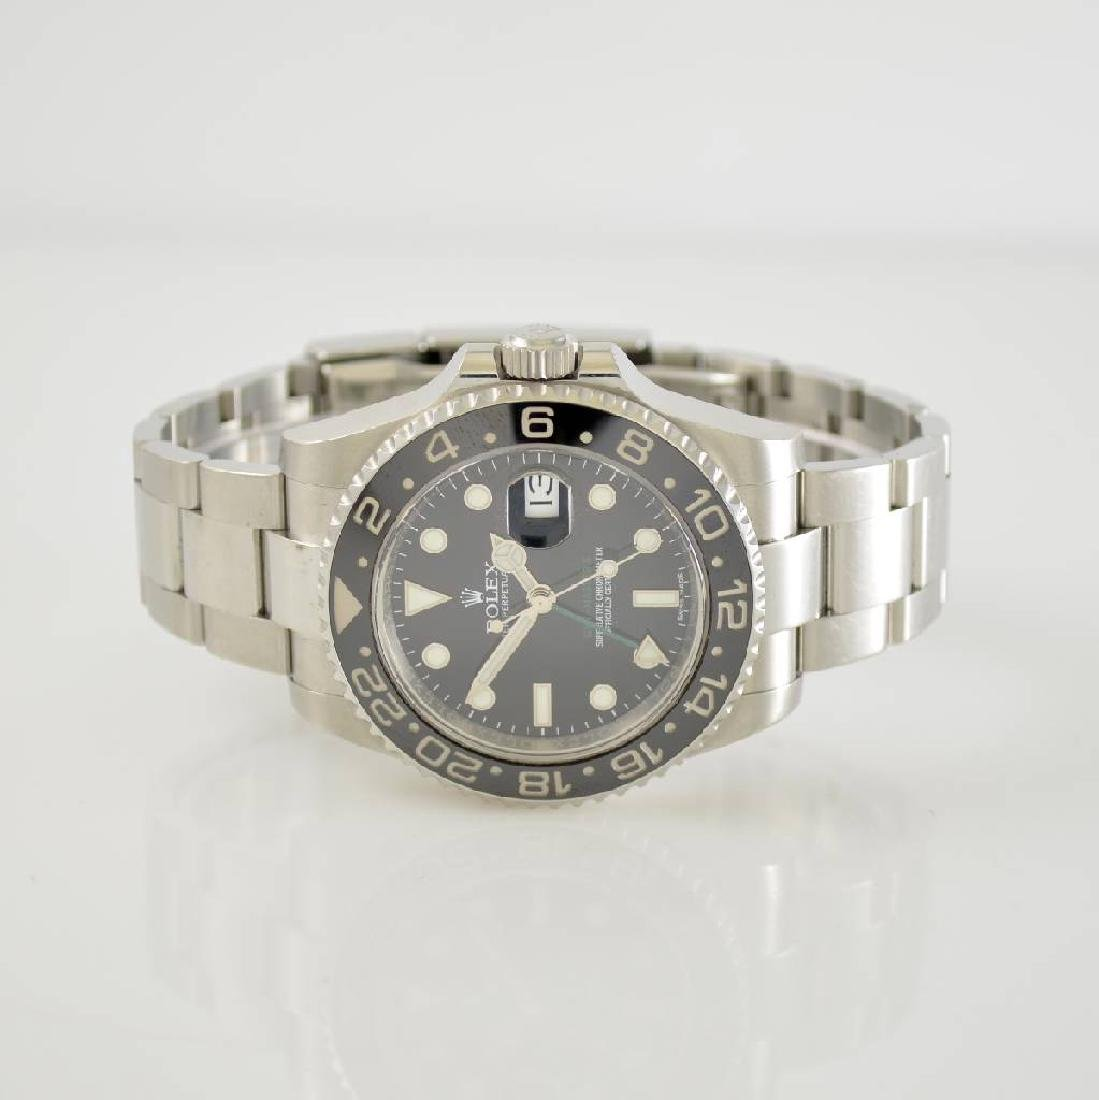 ROLEX Oyster Perpetual GMT-Master II gents wristwatch